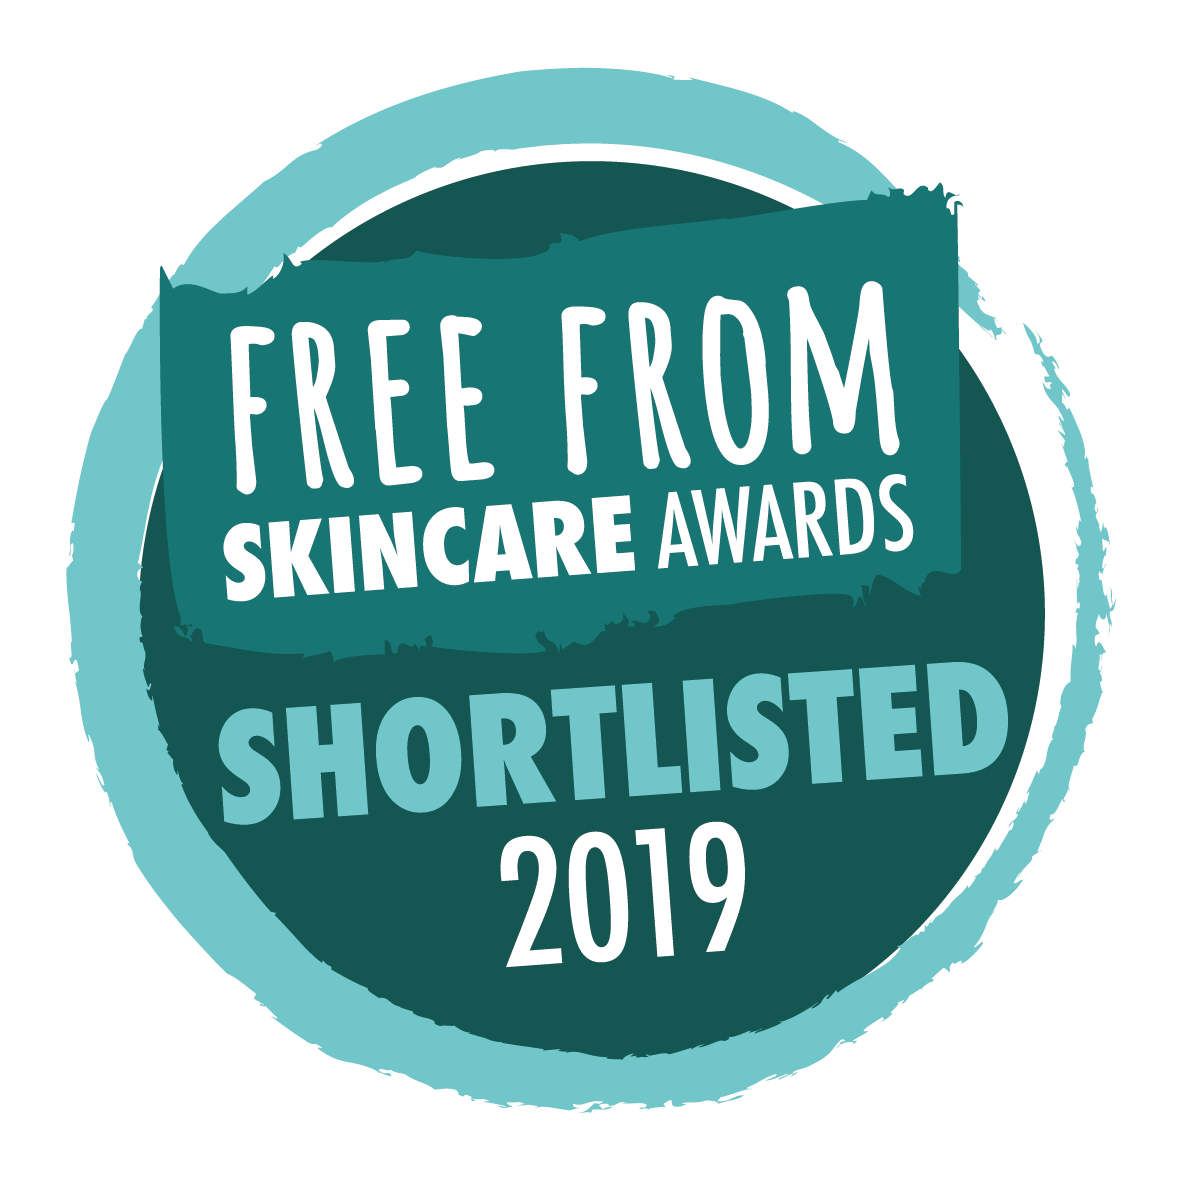 Free From Skincare Awards 2019 shortlisted